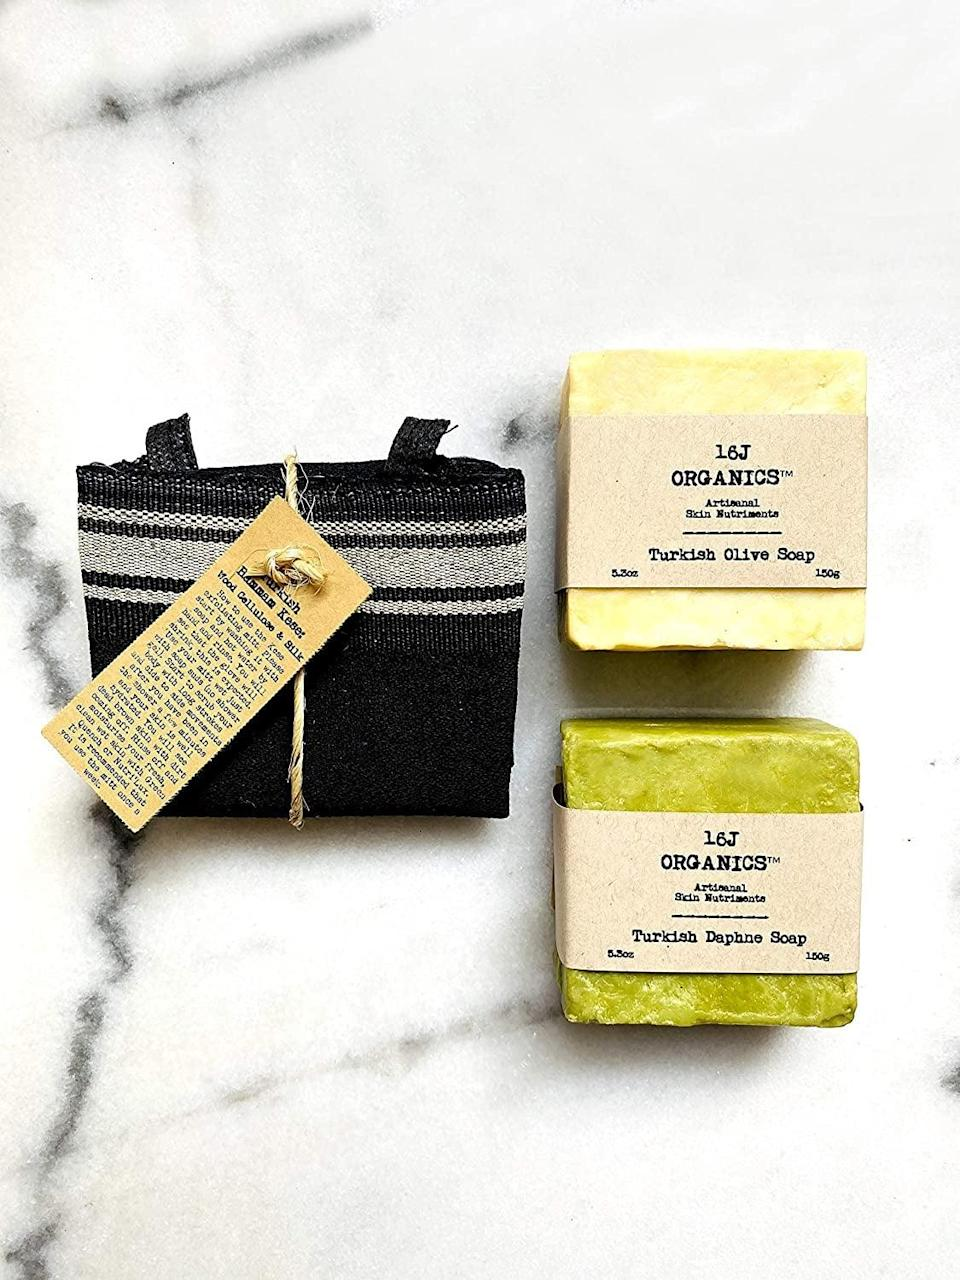 <p>Who doesn't love a good spa day!? Give yourself a relaxing pamper session with the <span>16J Organics Store Turkish Hammam Spa Bath</span> ($29), which includes extra thick kese body scrub mitt, and artisanal olive and daphne soaps.</p>